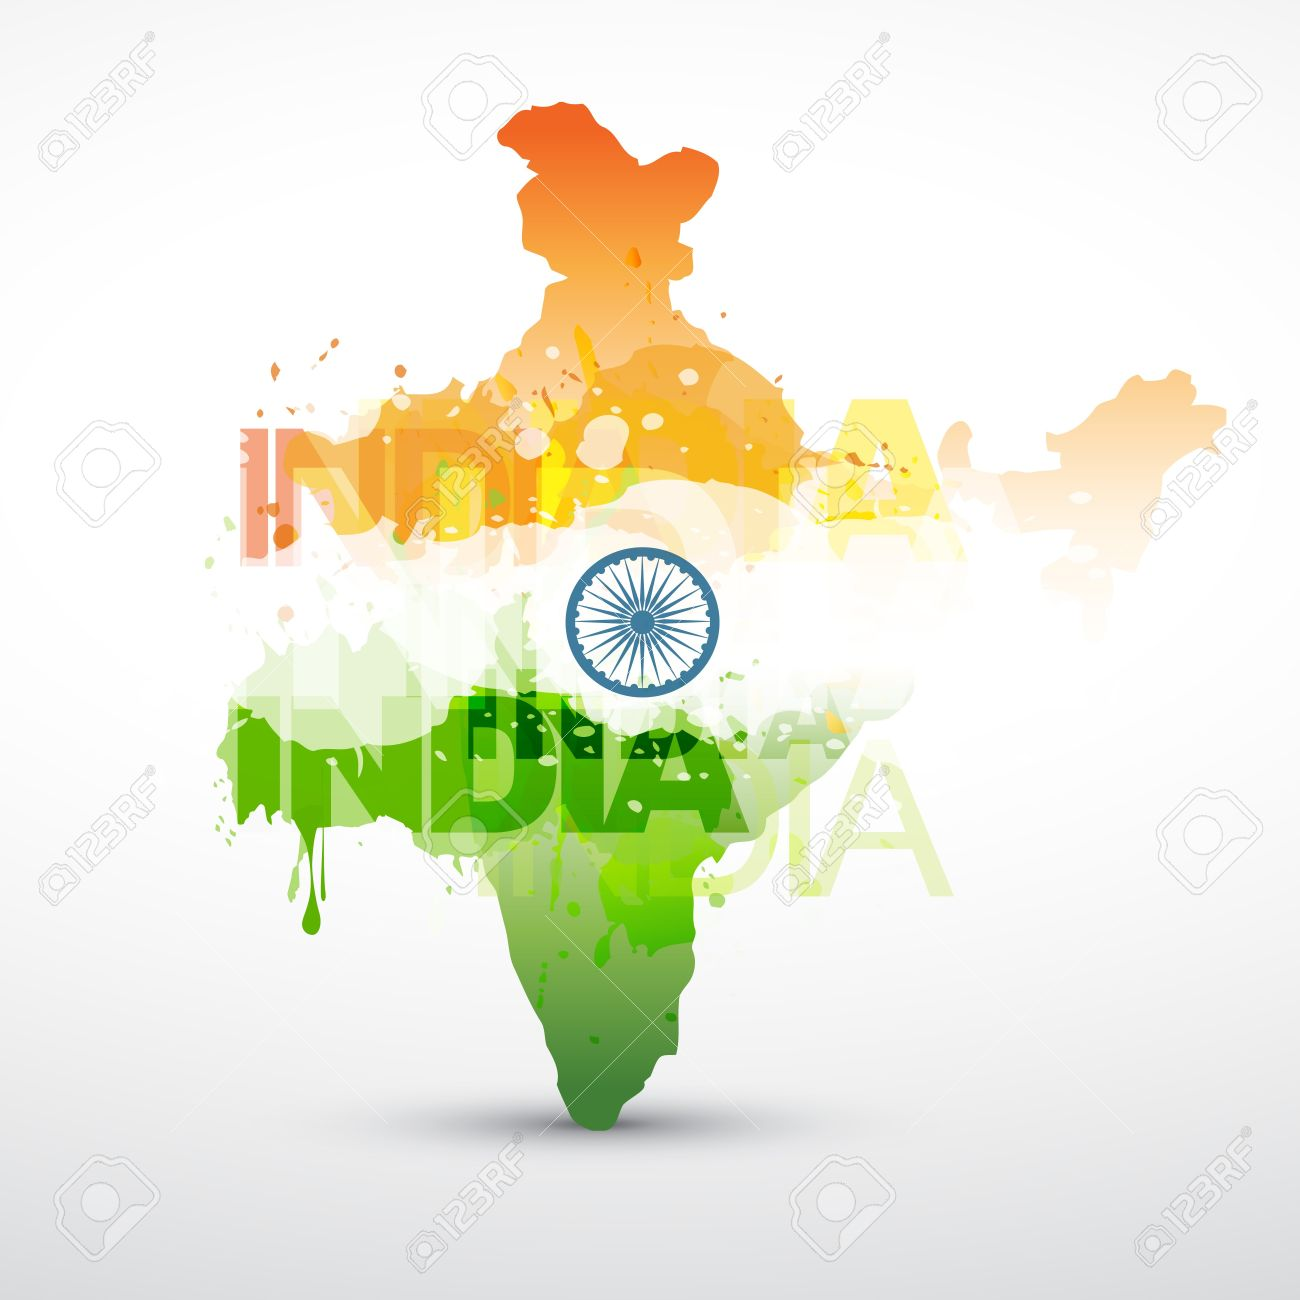 India Map Flag.India Map With Indian Flag Royalty Free Cliparts Vectors And Stock